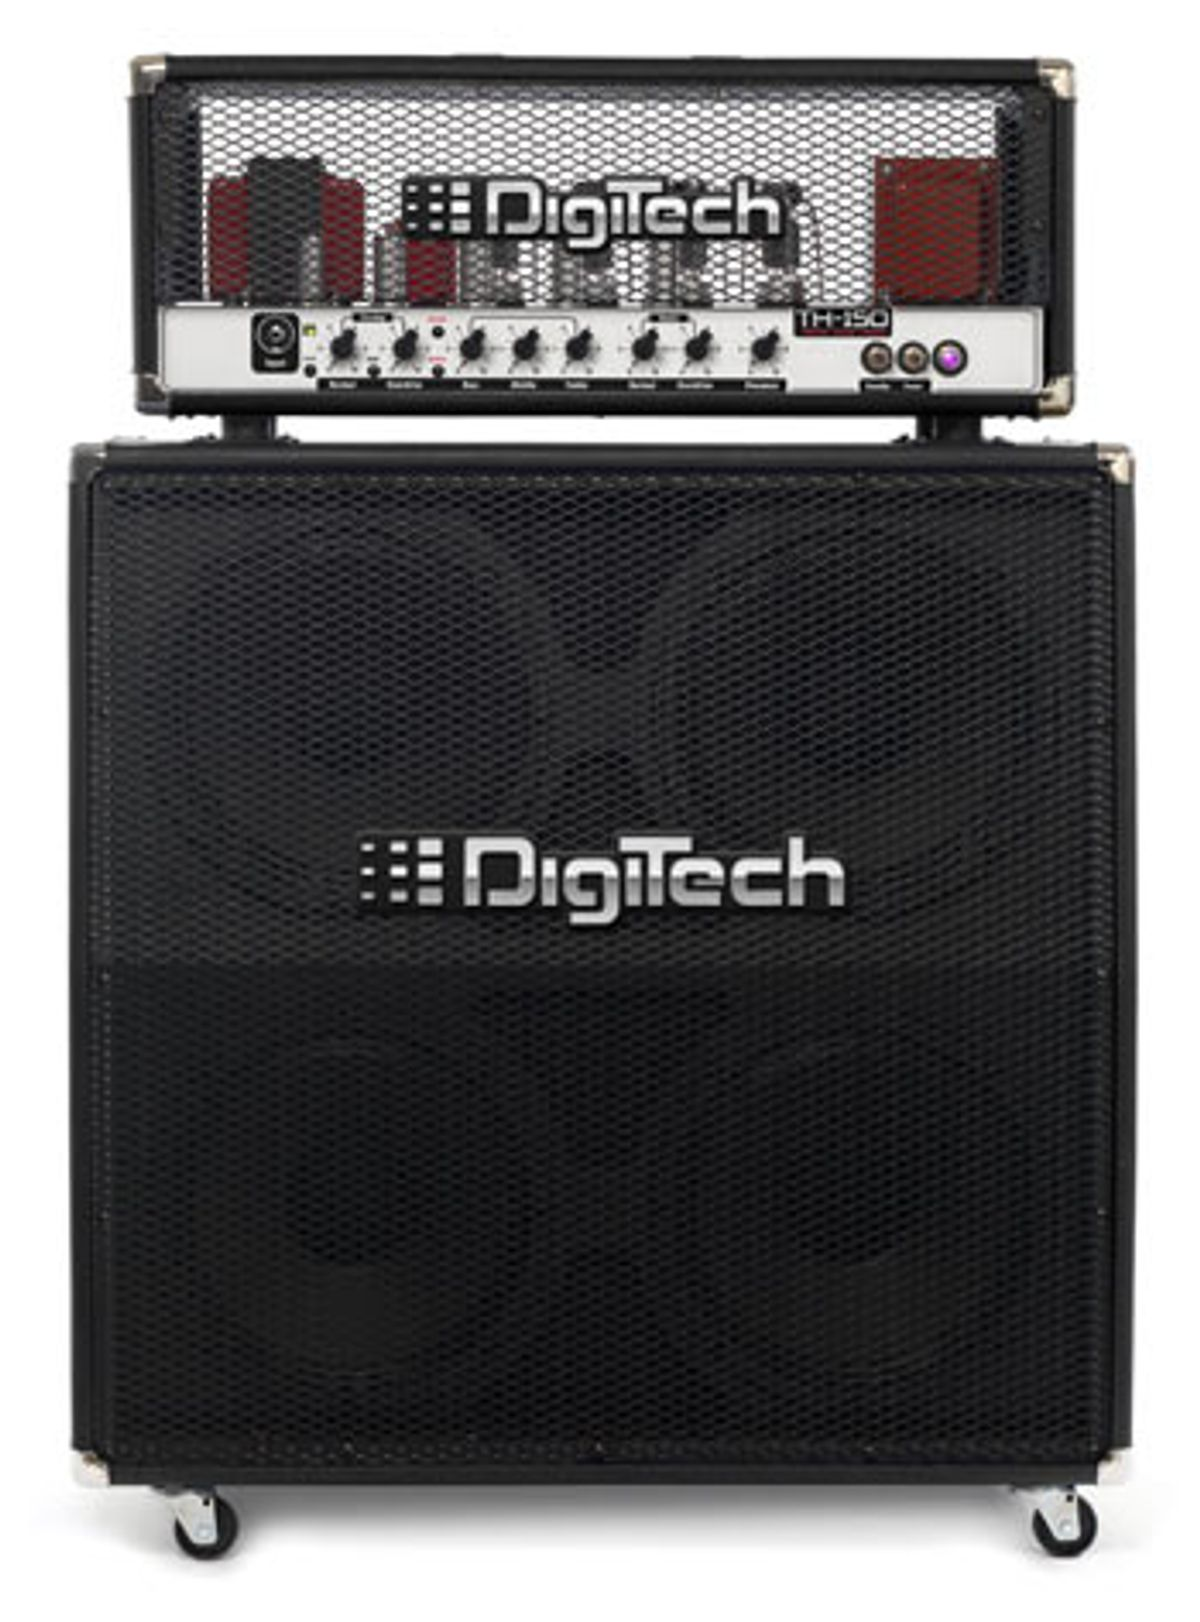 DigiTech Introduces Its First-Ever Guitar and Bass Amplifiers at NAMM 2011